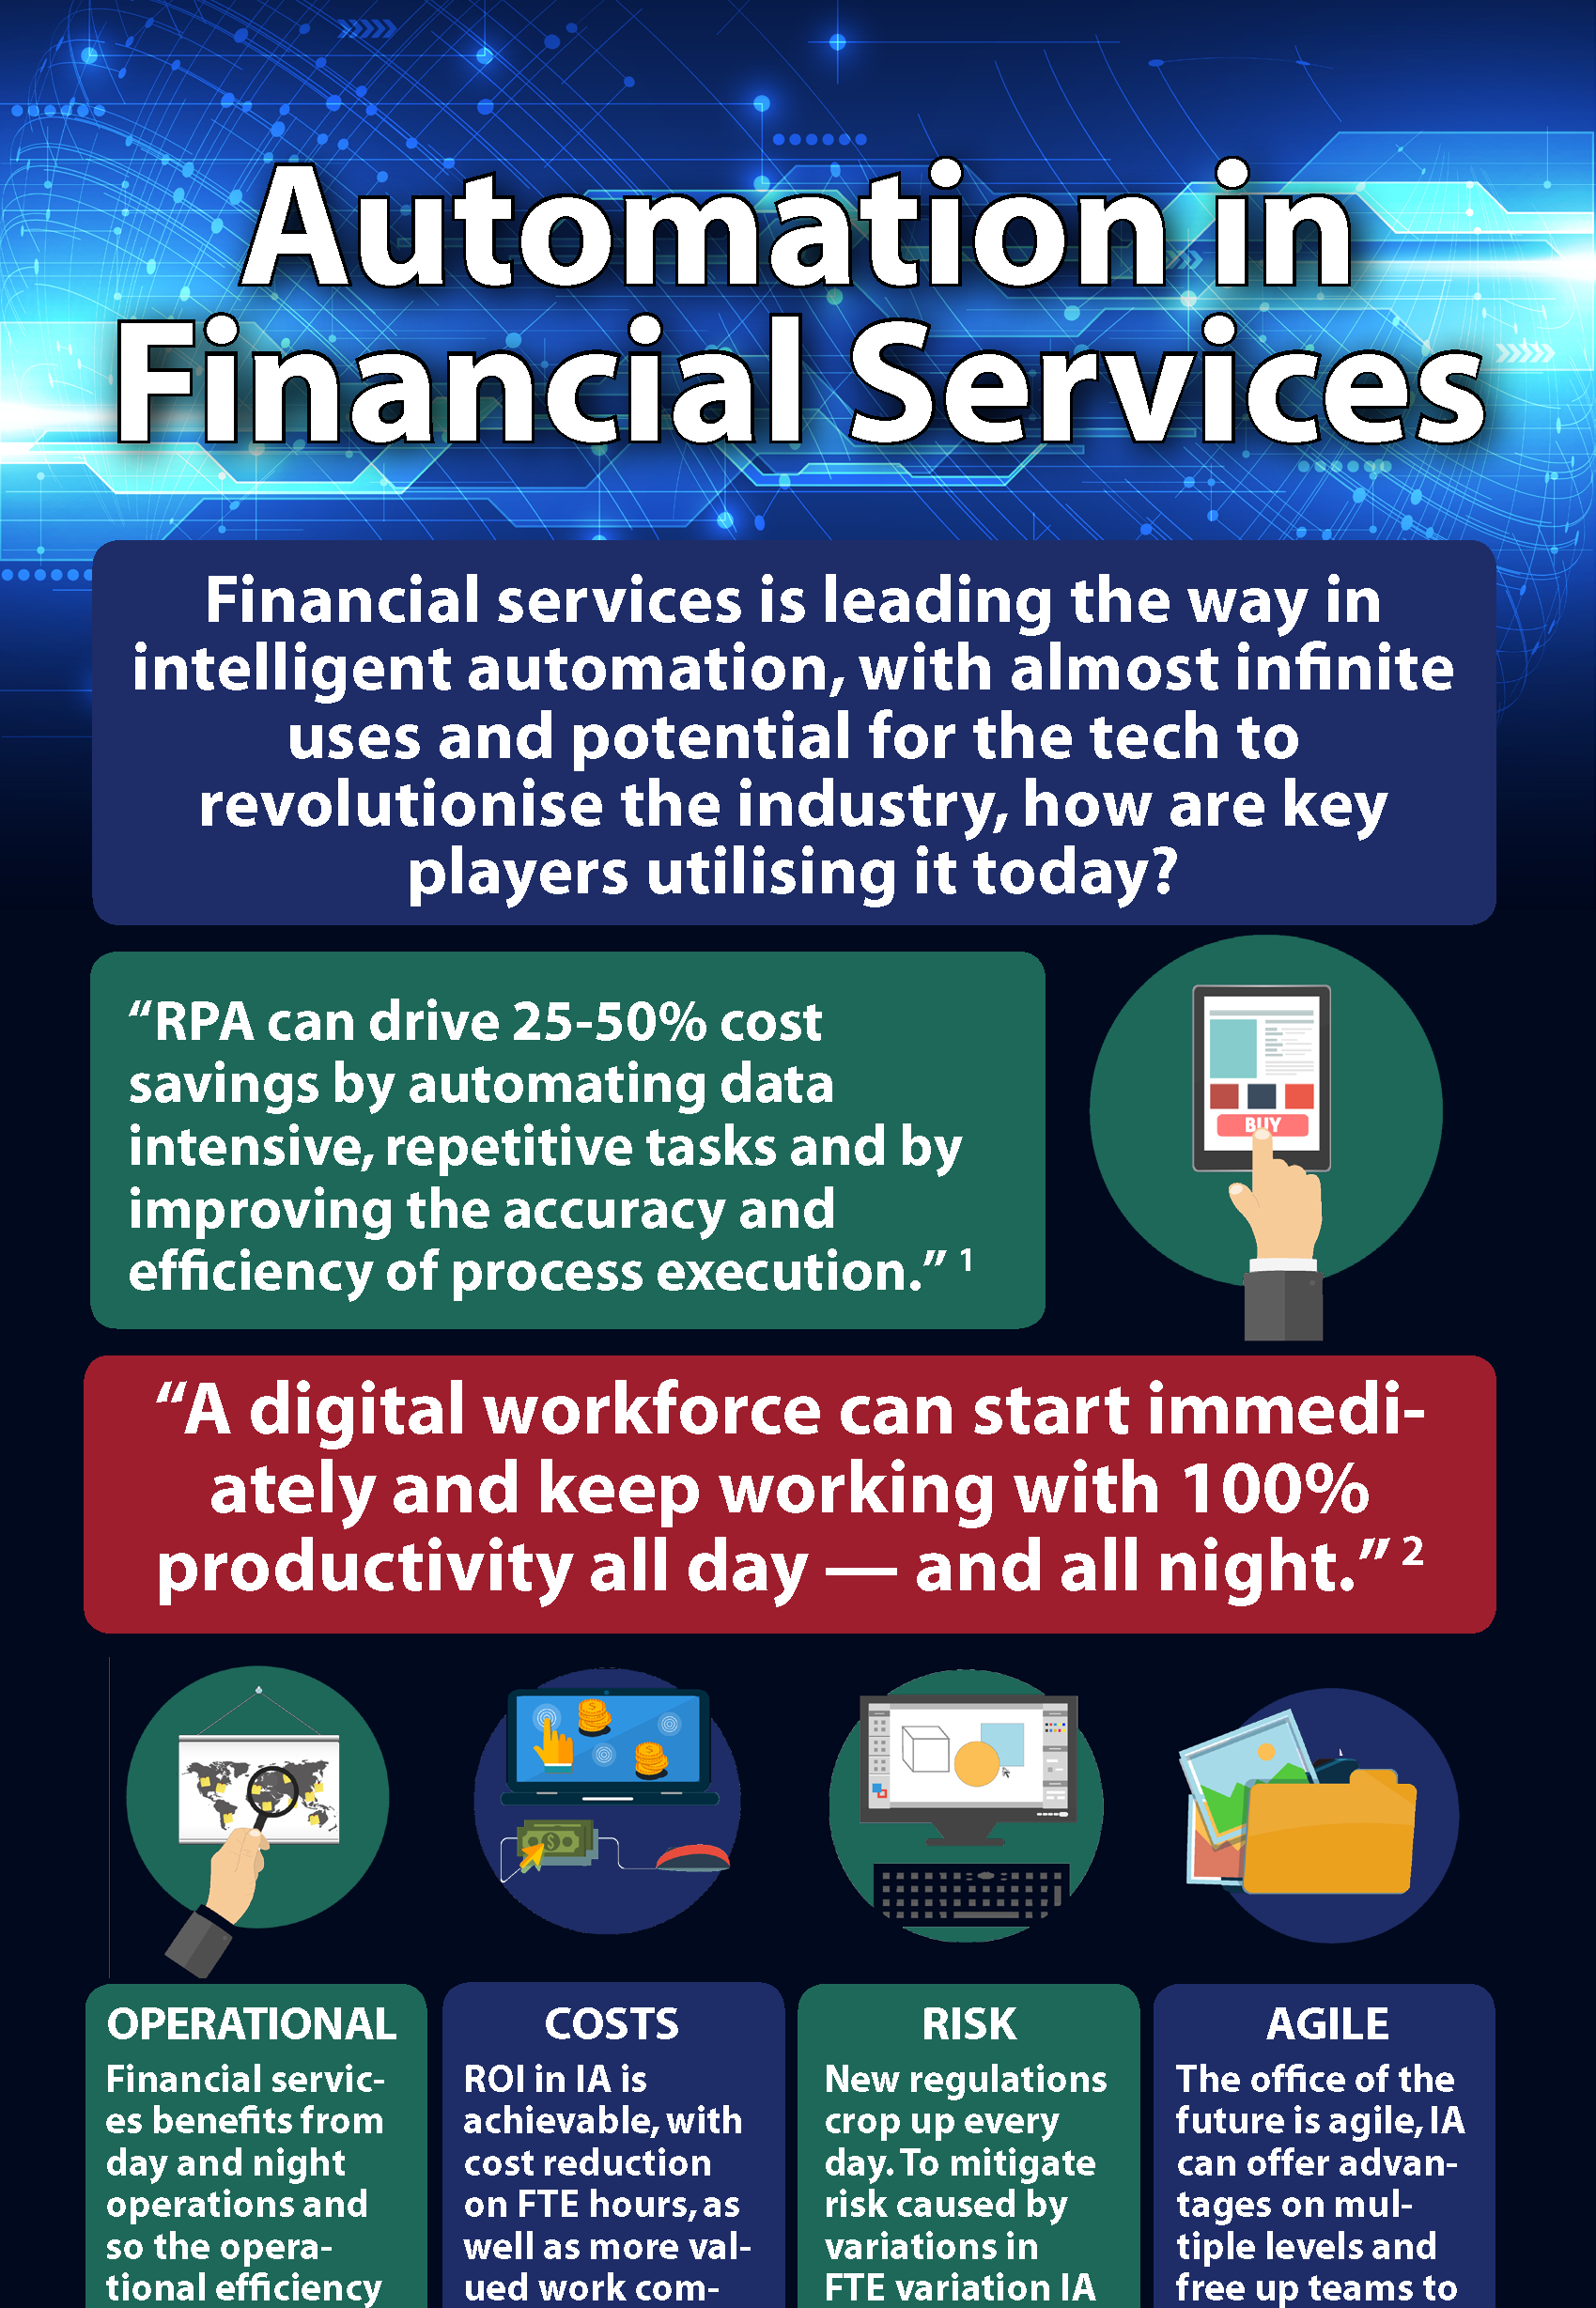 IA in Financial Services Infographic